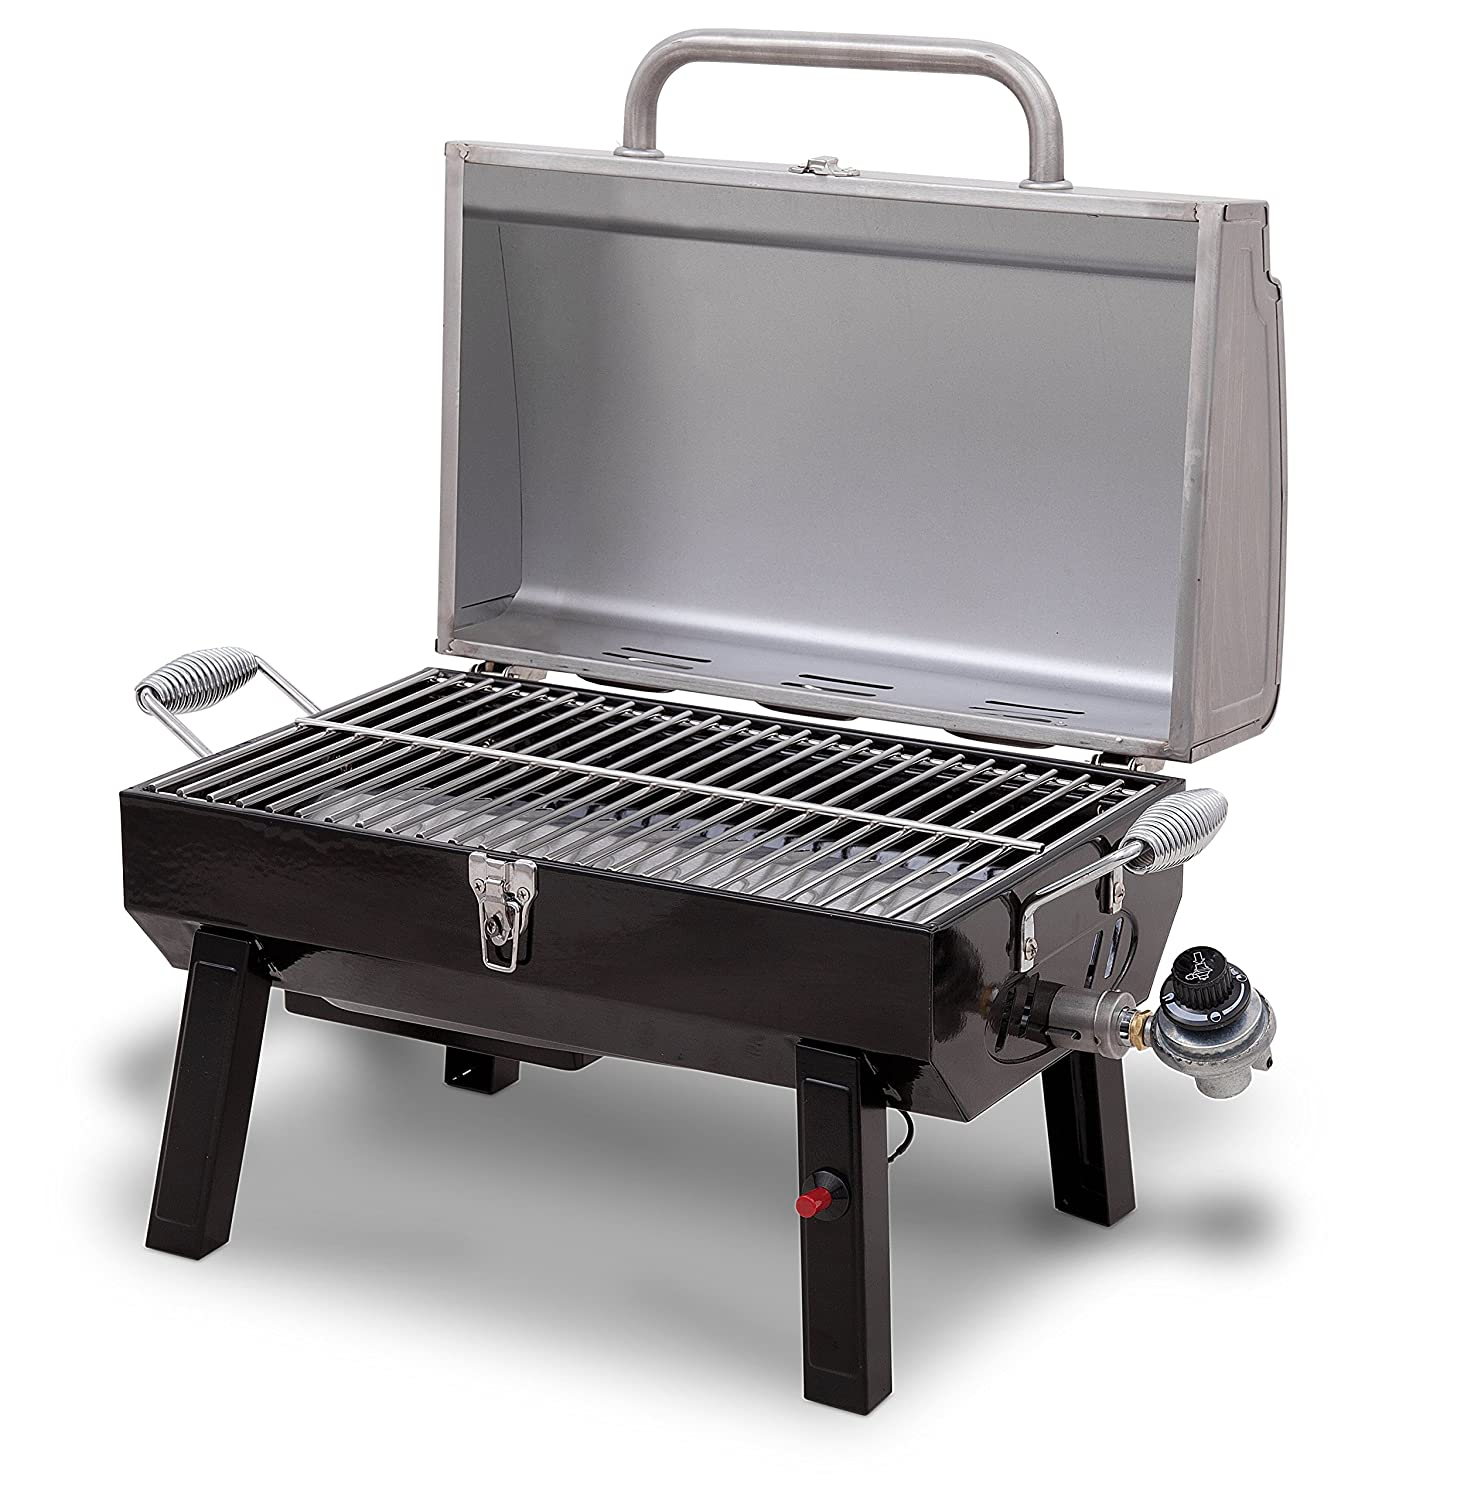 Charming Amazon.com : Char Broil Stainless Steel Portable Liquid Propane Gas Grill :  Outdoor Tabletop Grills : Garden U0026 Outdoor